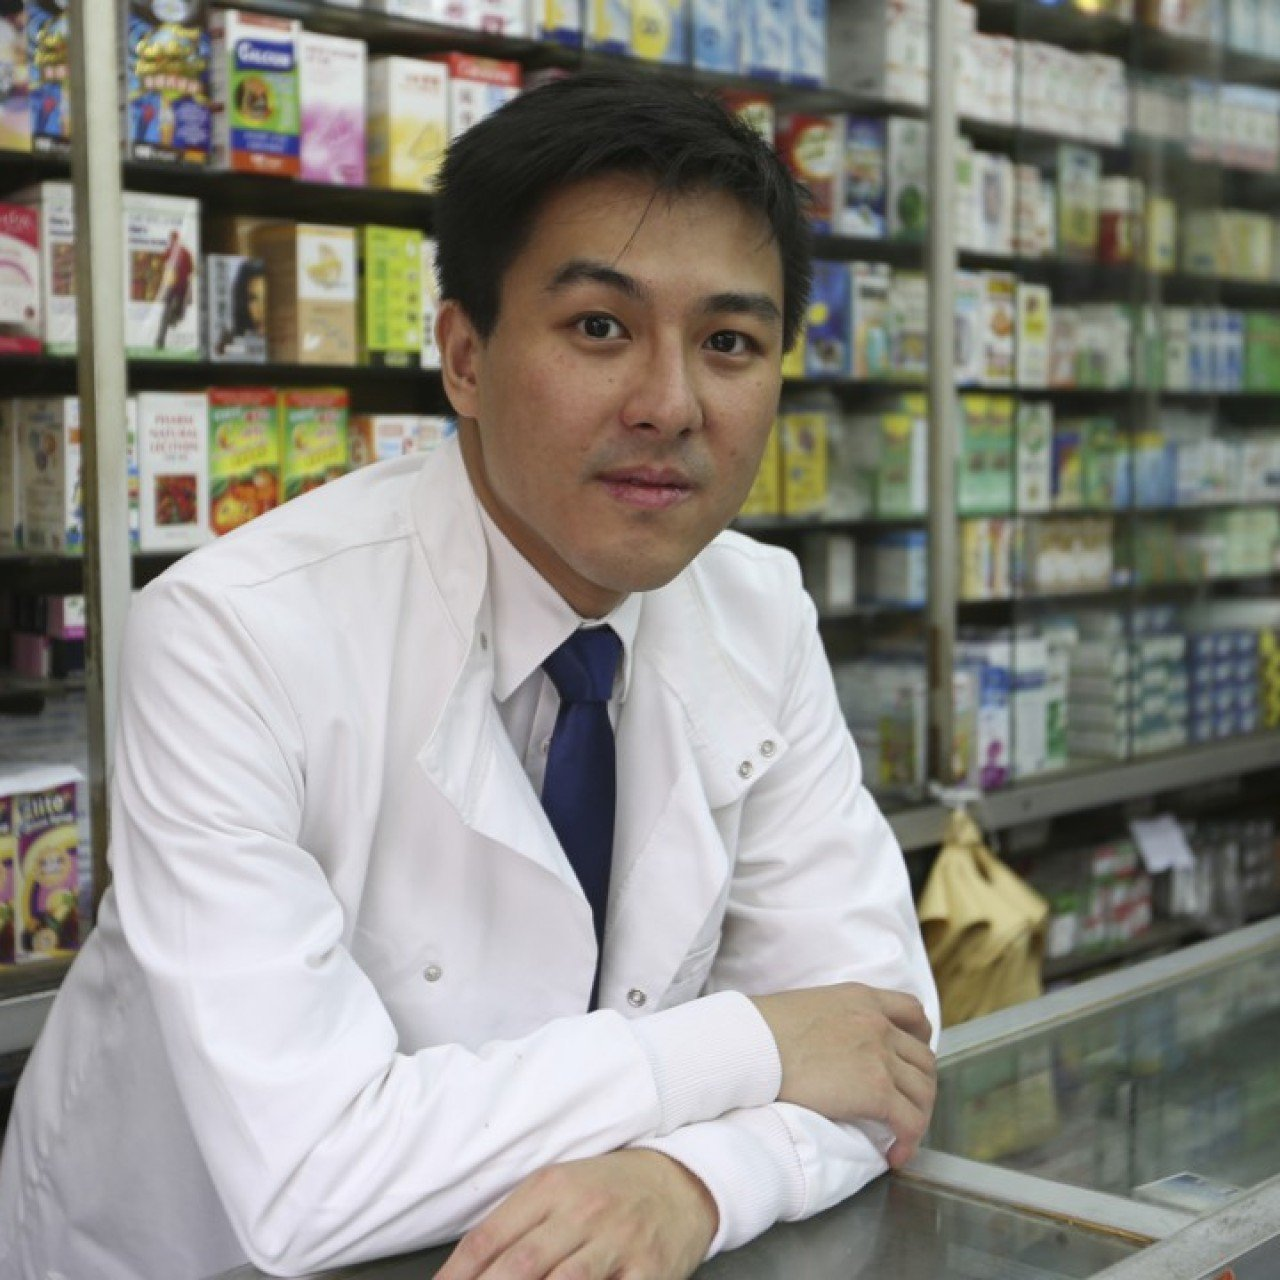 Young Hong Kong pharmacists hope to fill gap in care by